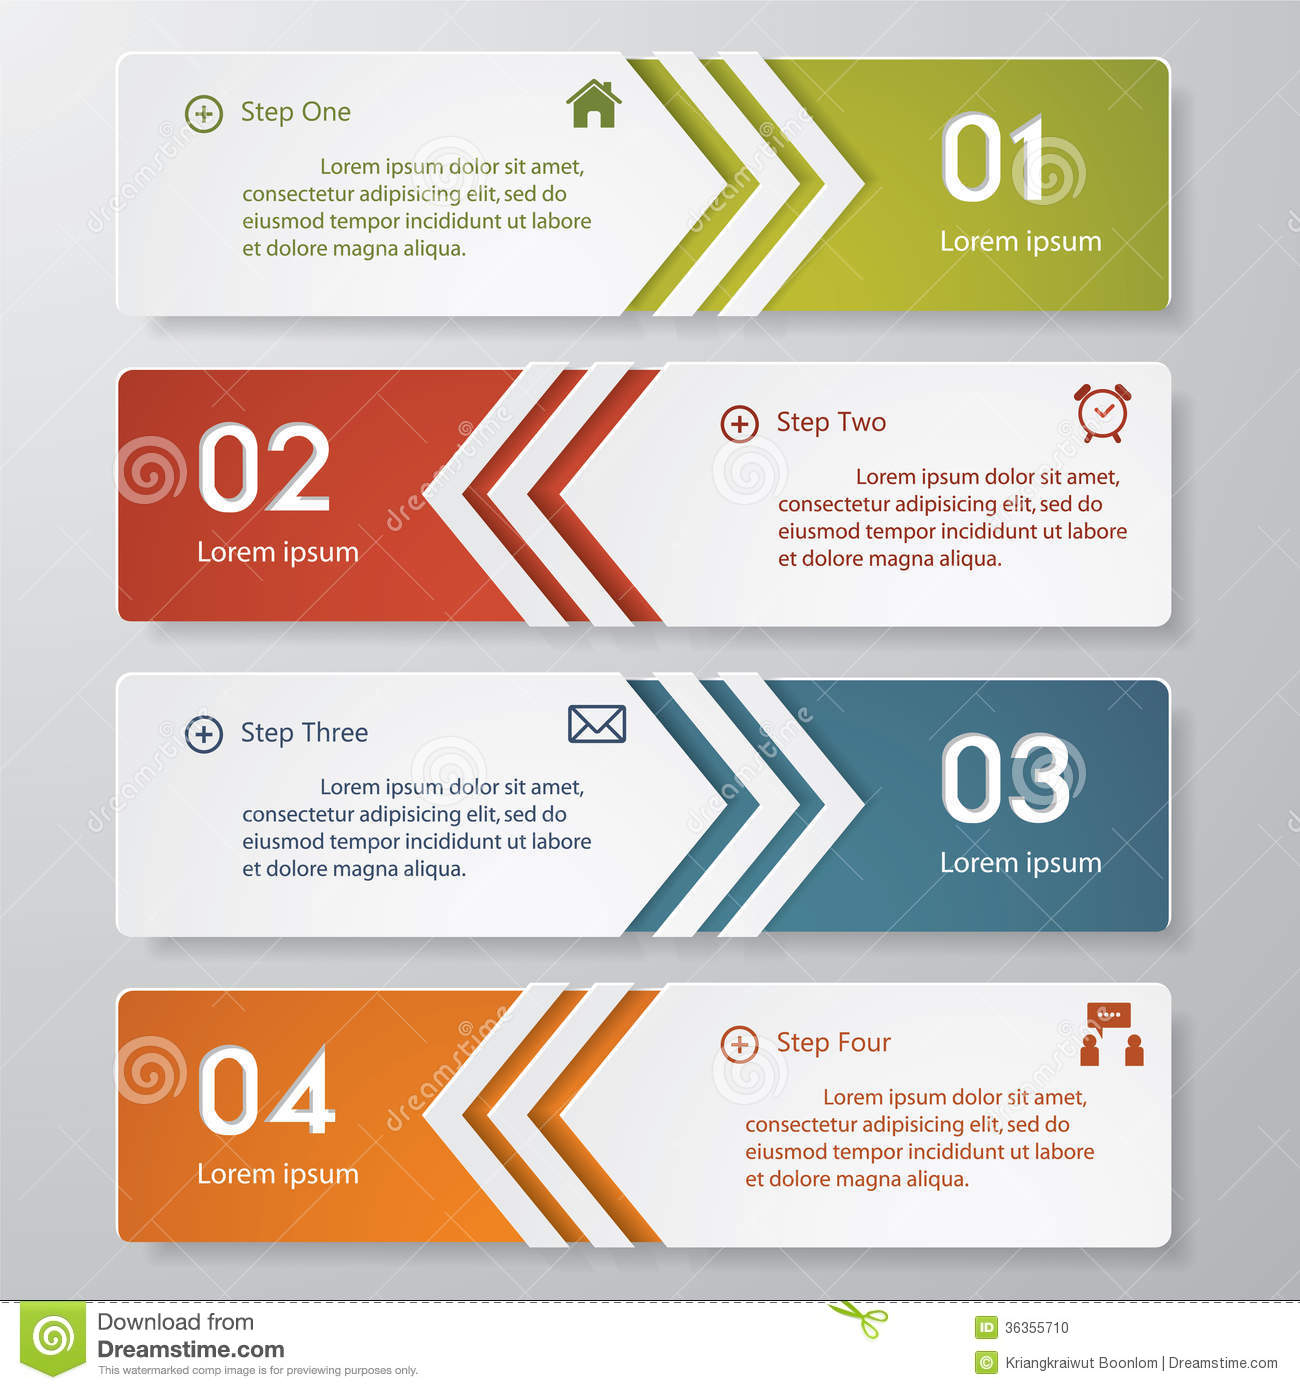 19 graphic design web banners images abstract design - Text banner design ...